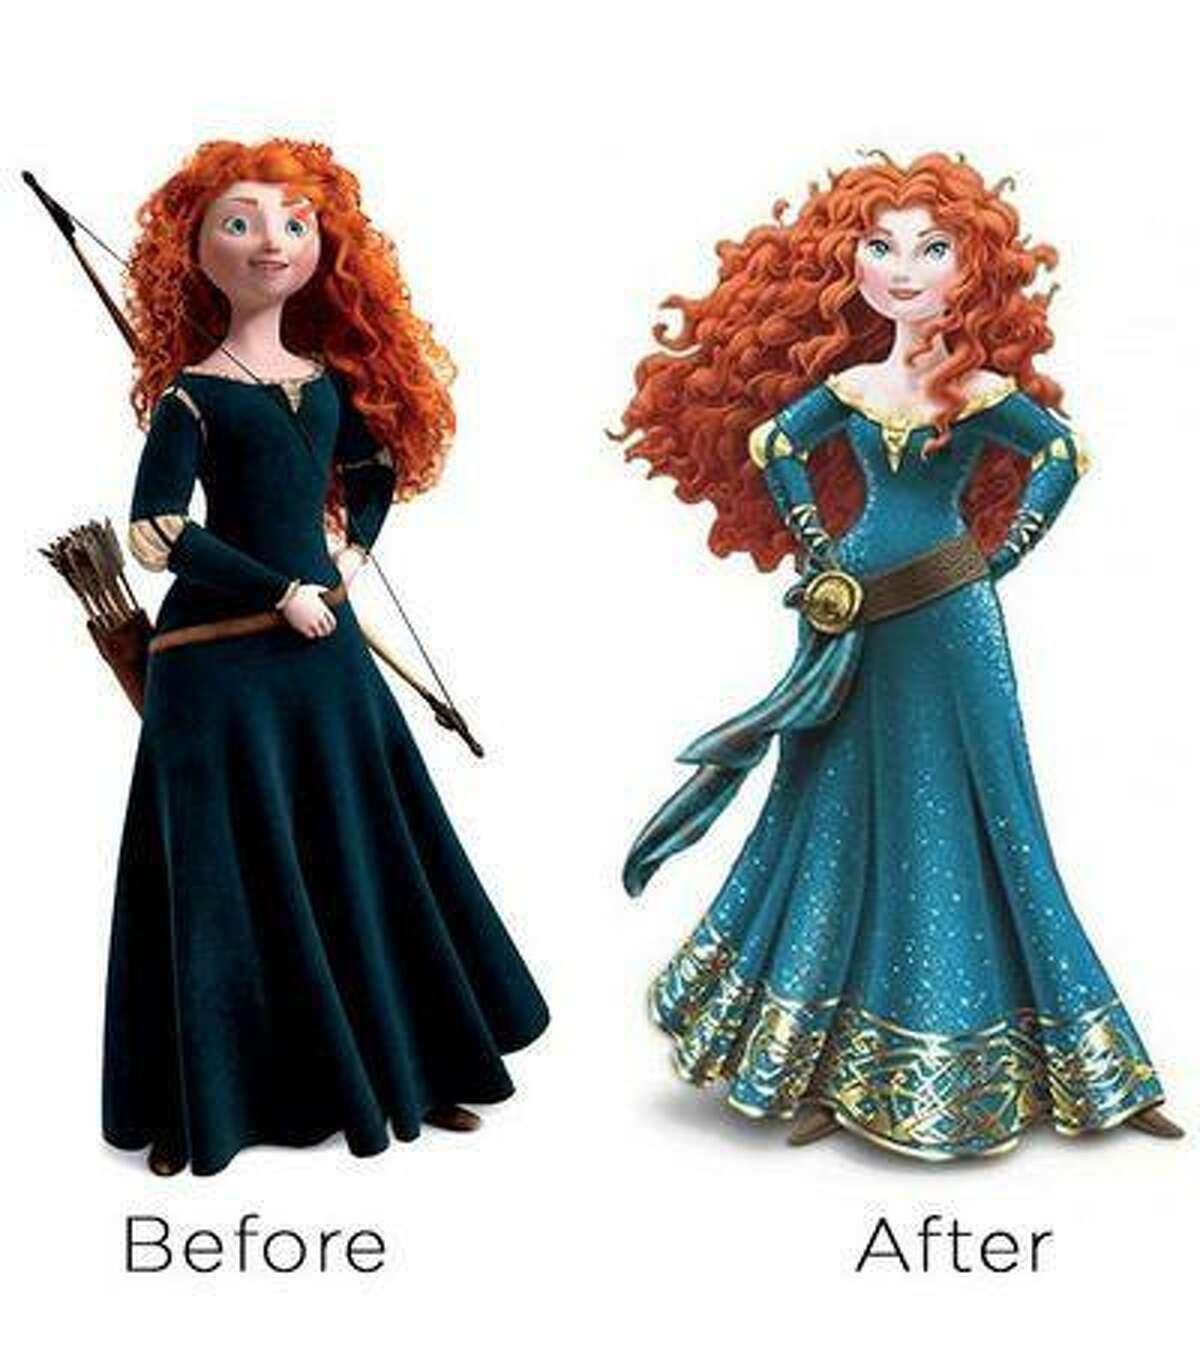 In this image taken from the Yahoo Shine parenting blog, the different versions of the Merida character are shown. Marin resident Brenda Chapman wrote and directed the Brave film that featured the character, whose original image was inspired by Brenda's daughter Emma Chapman. The character has been made to look more adult ahead of adding Merida as the 11th Disney princess. Read the Yahoo post at http://yhoo.it/15wywHZ.